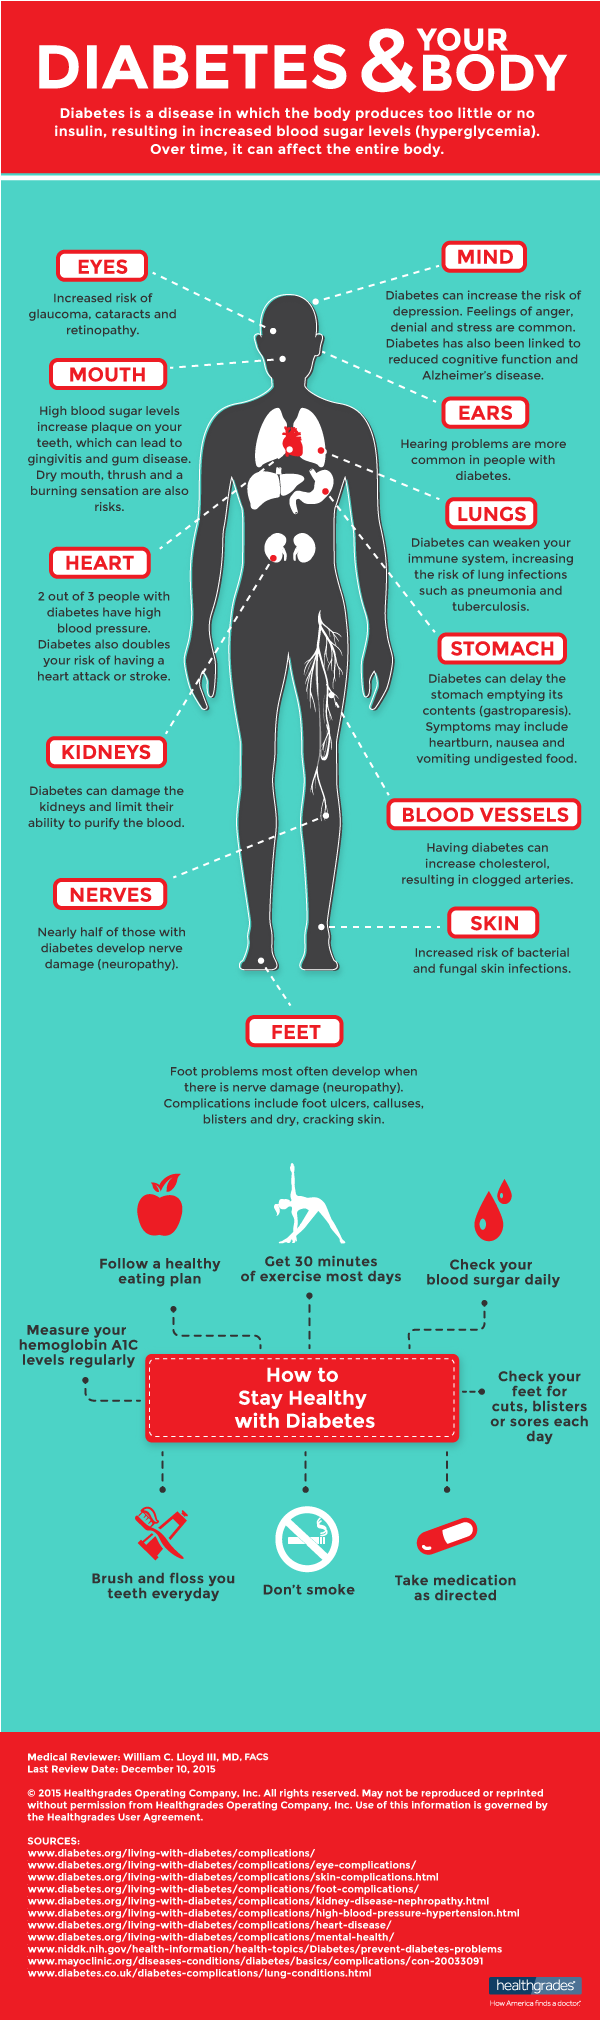 Diabetes and Your Body Infographic Image